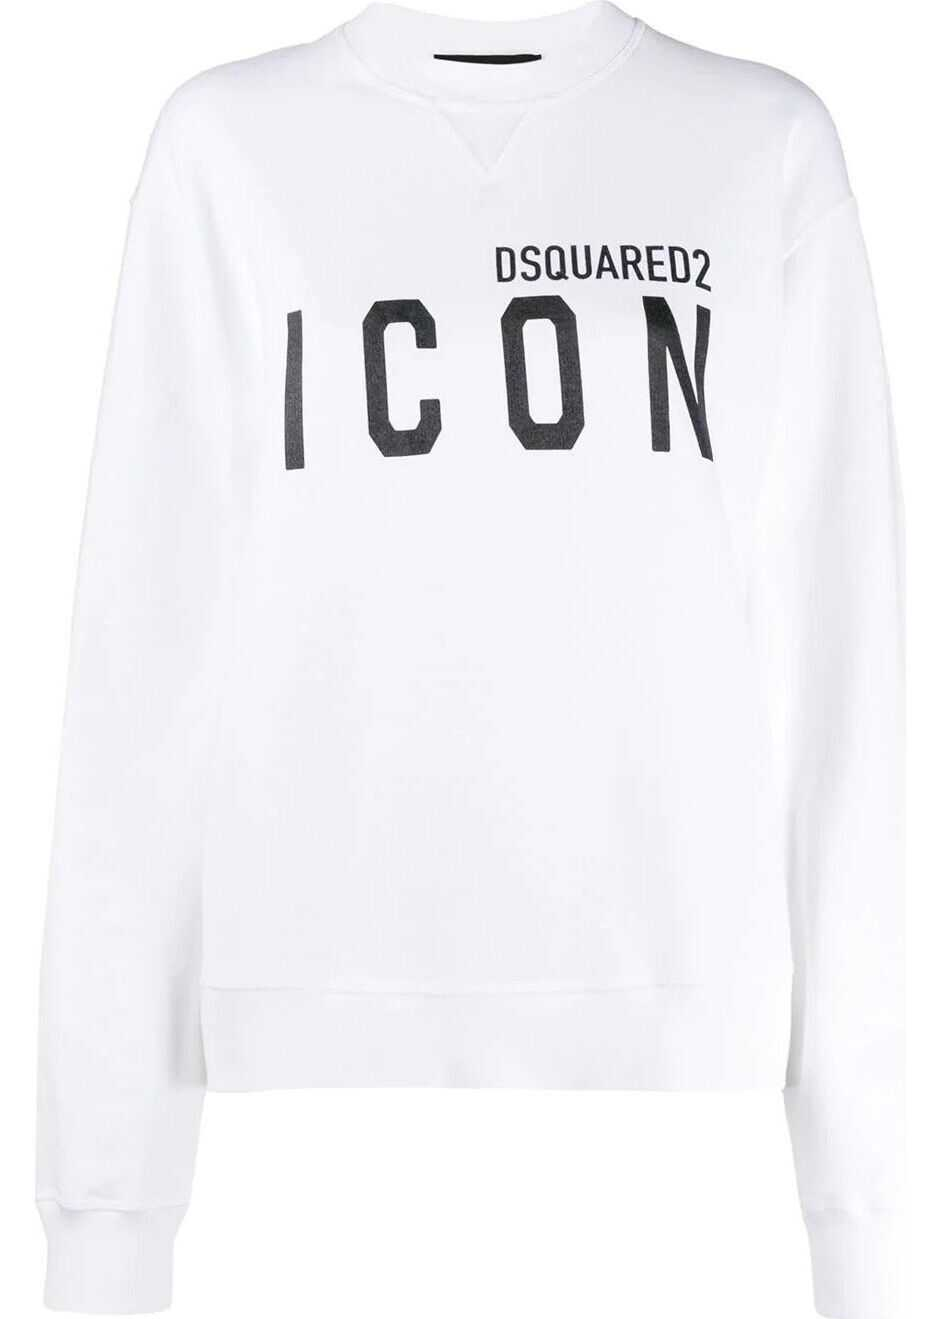 DSQUARED2 Cotton Sweatshirt WHITE